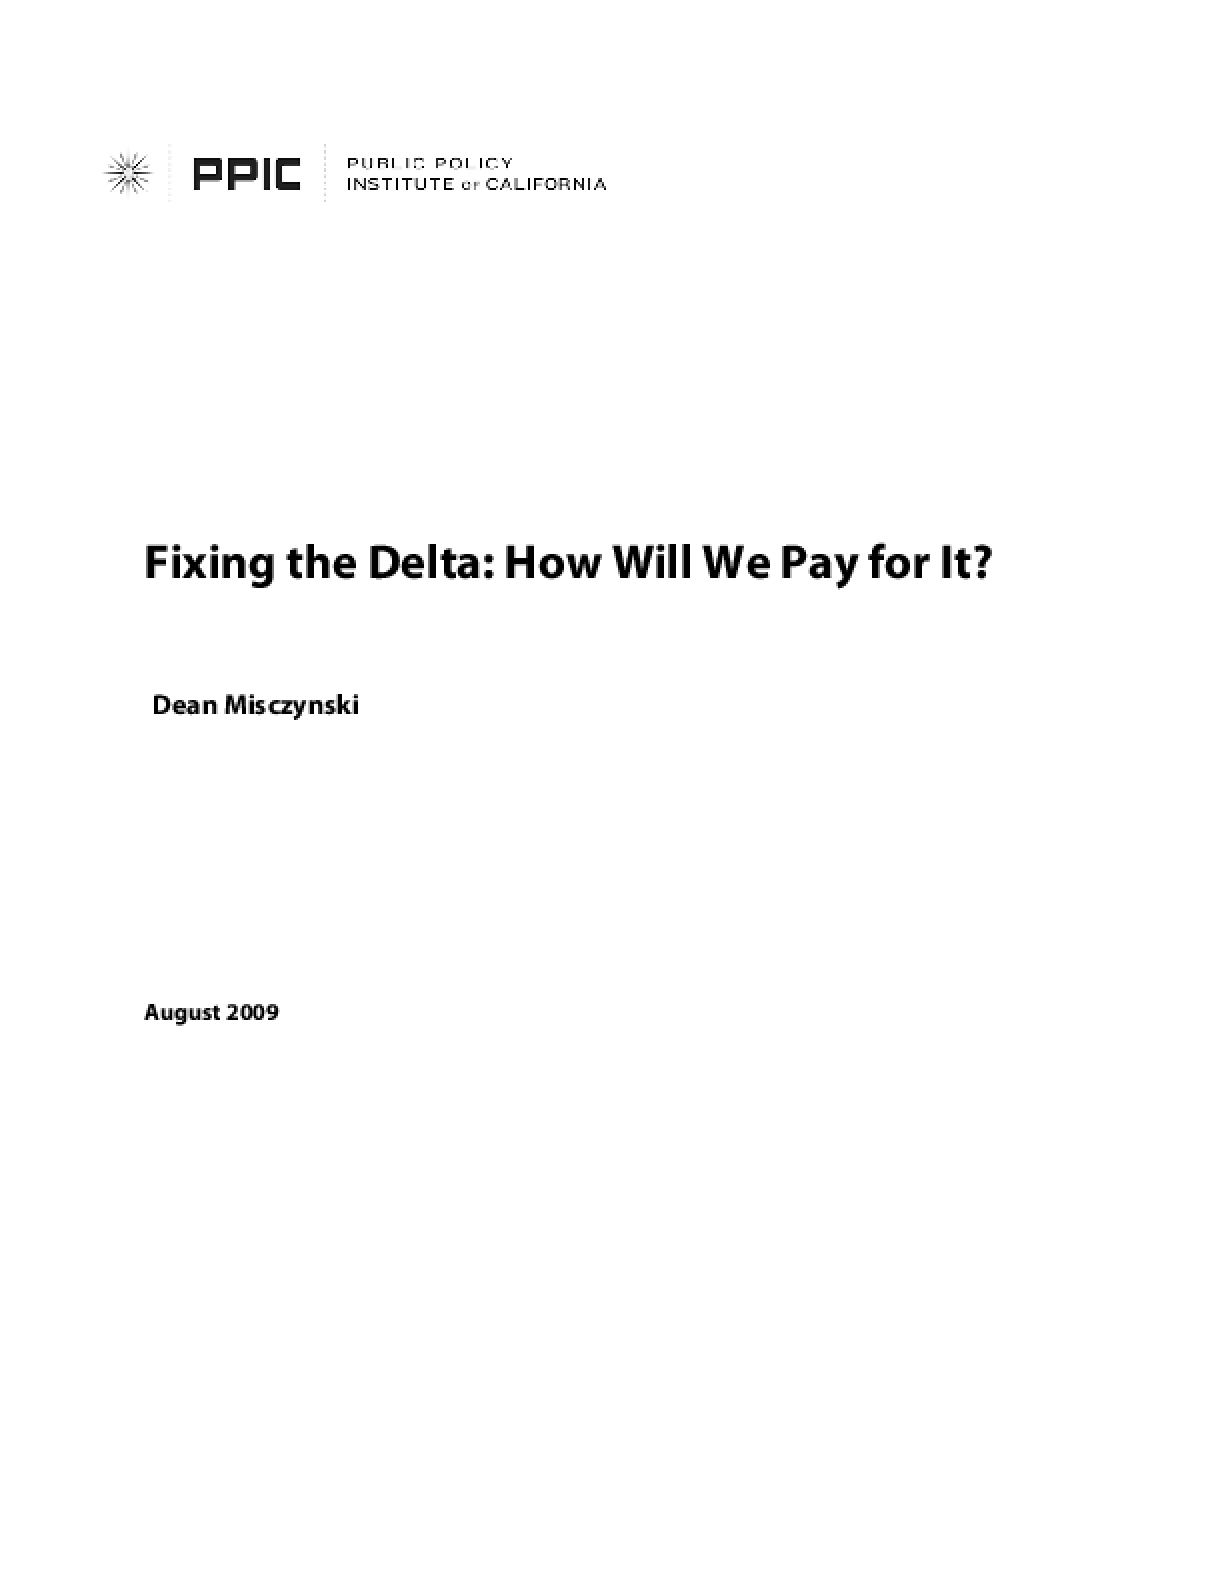 Fixing the Delta: How Will We Pay for It?